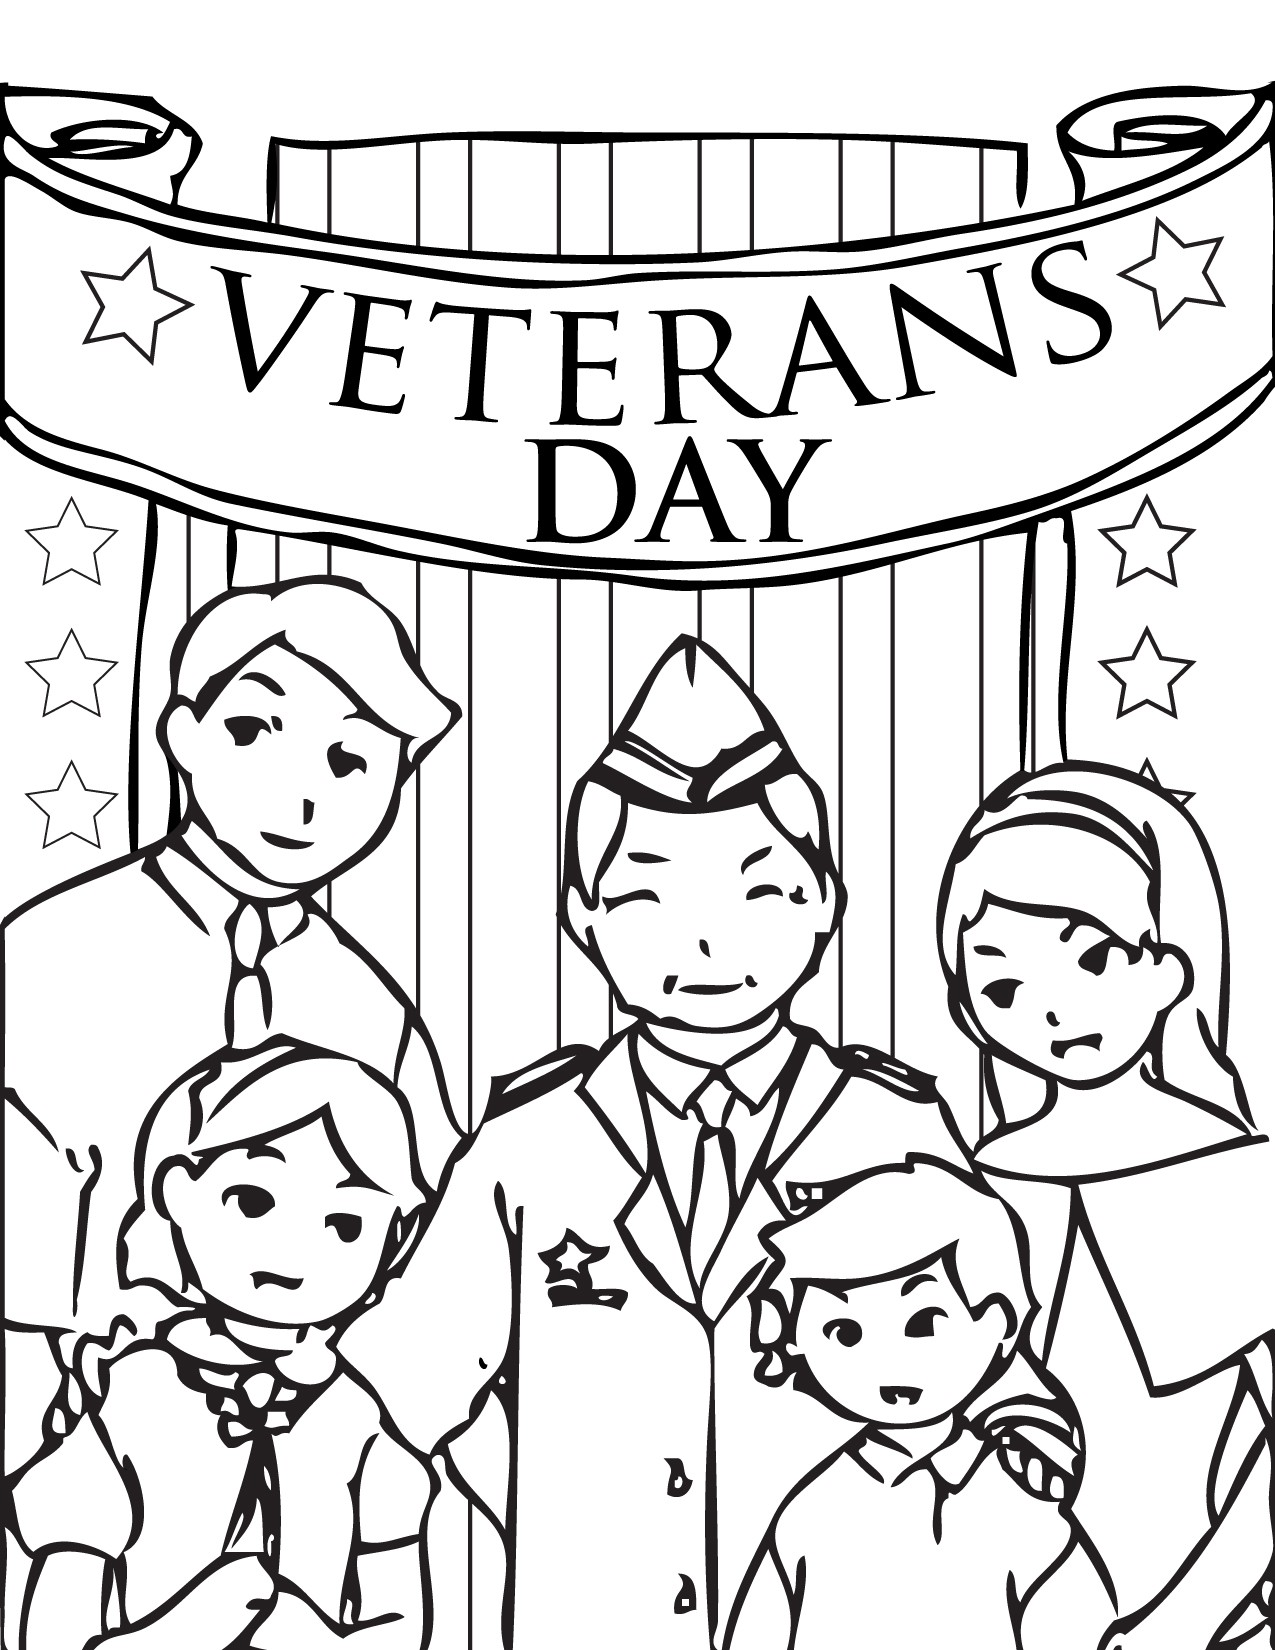 Free Coloring Pages For Veterans Day at GetDrawings | Free ...